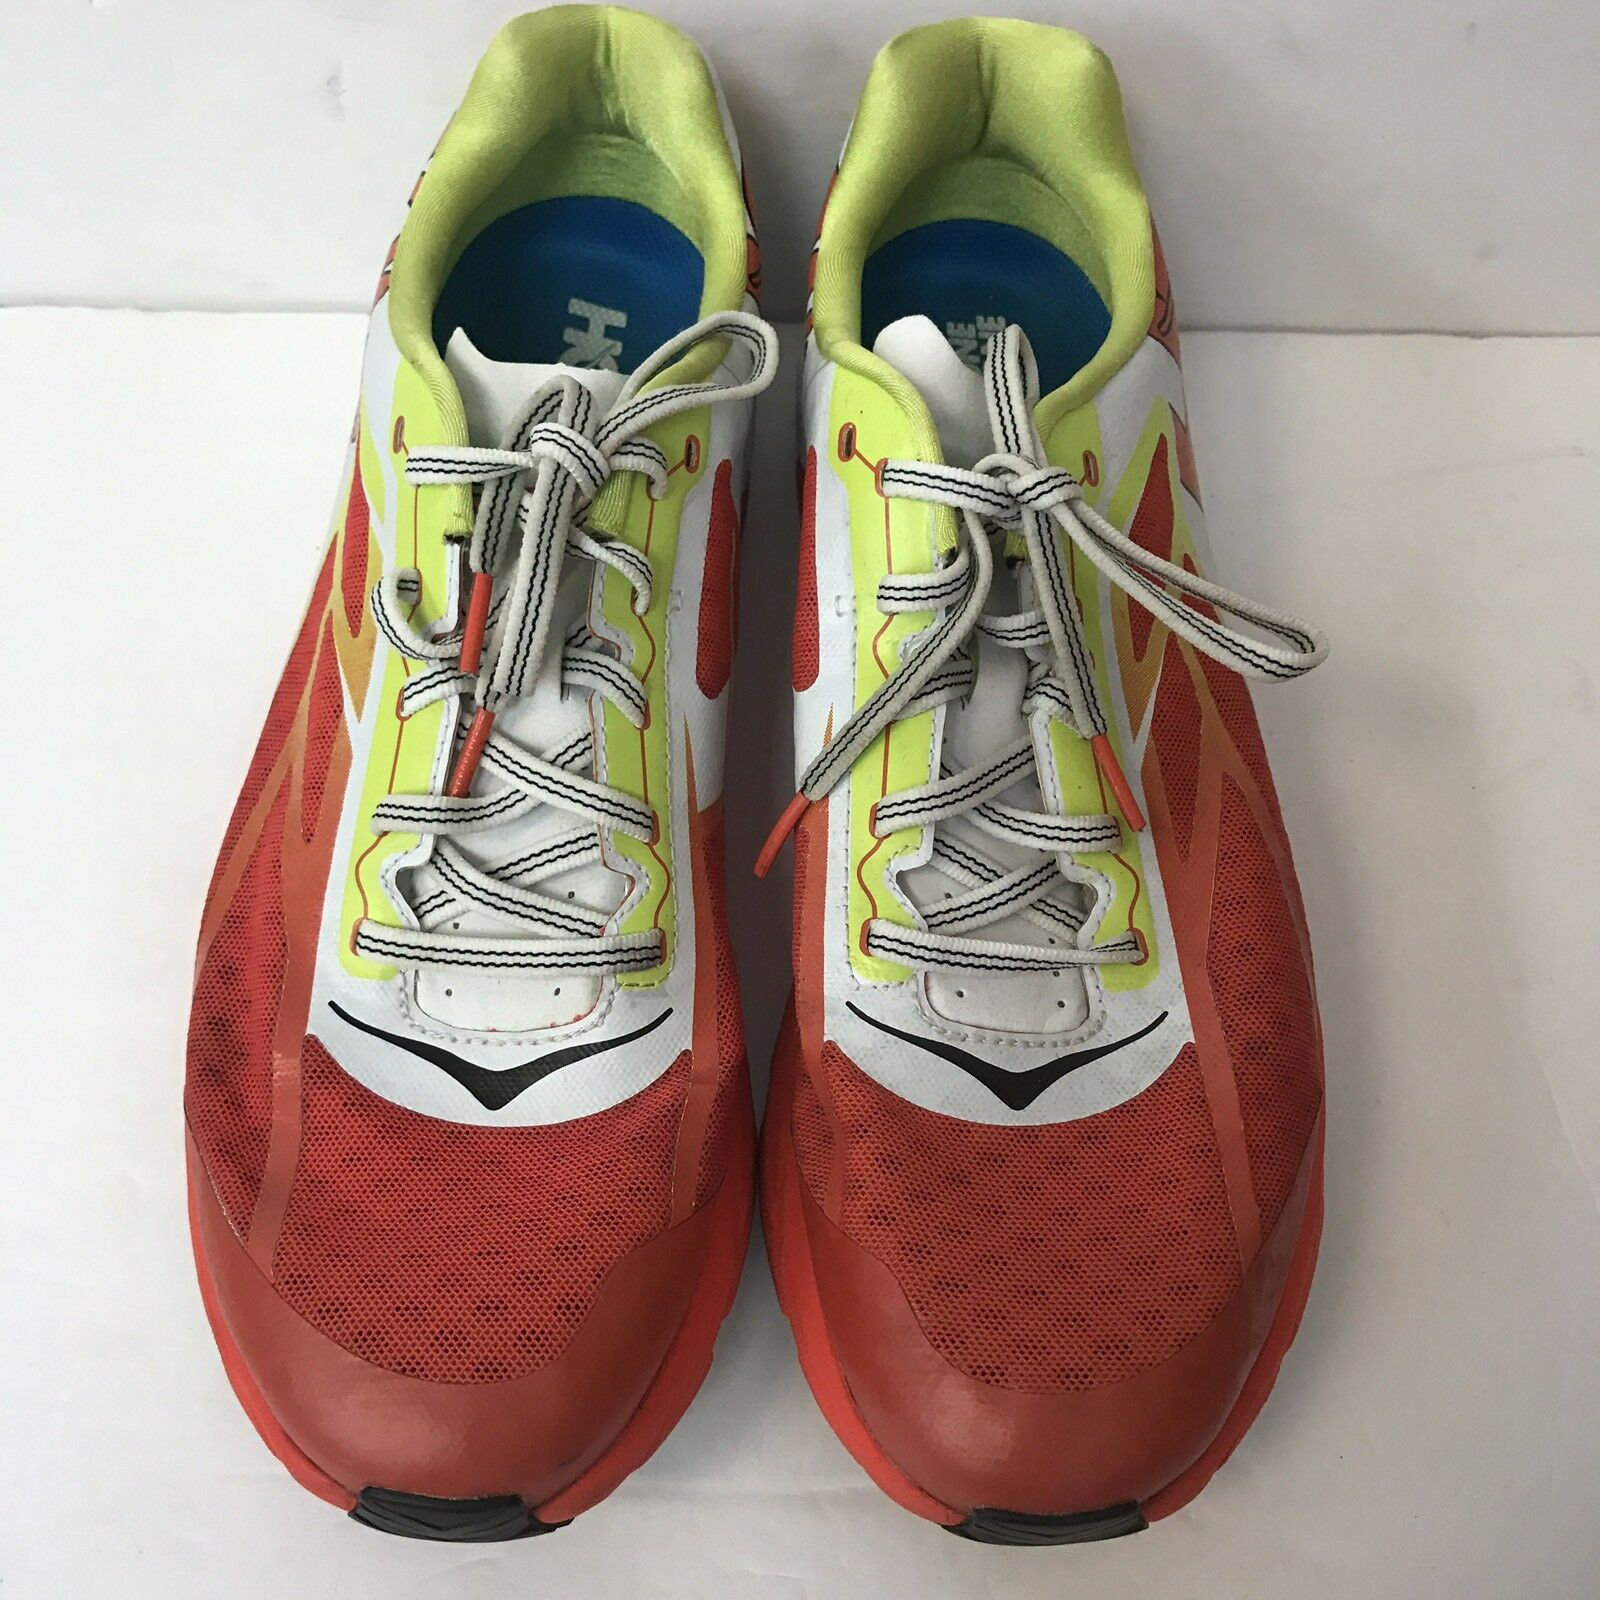 Hoka one one Tracer Running shoes Men Size 11.5 Great Condition